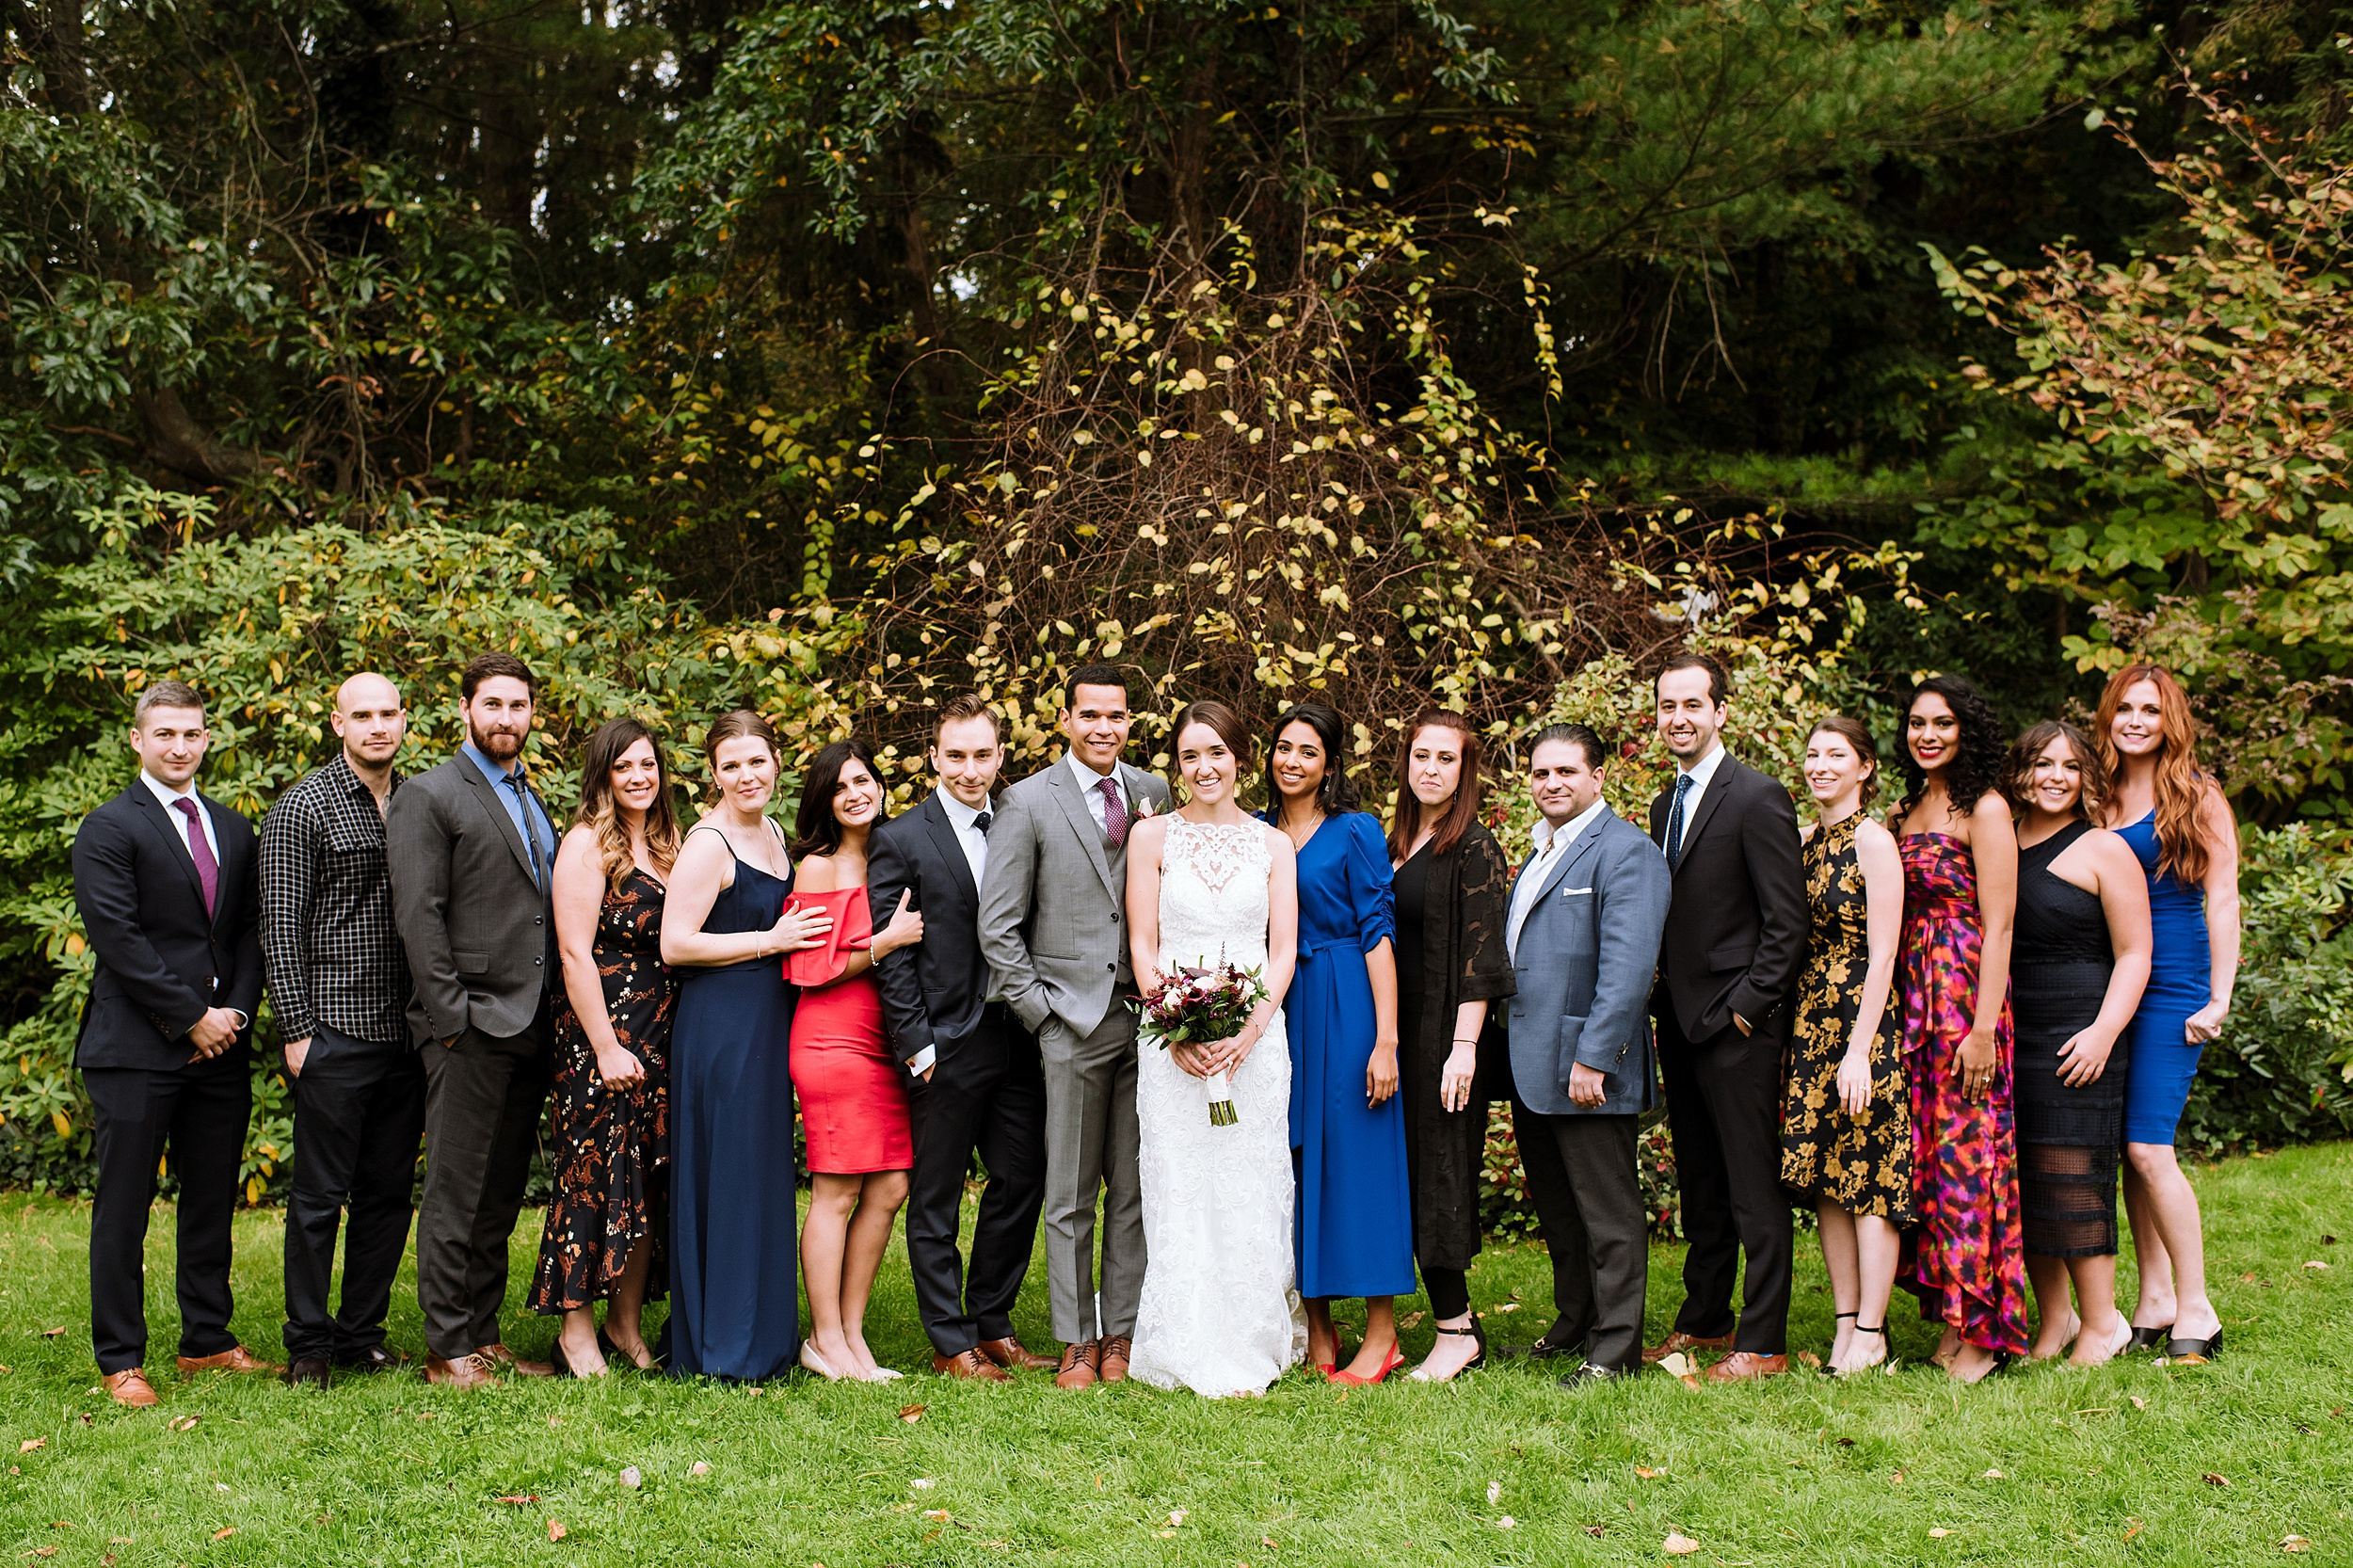 Toronto_Wedding_Photographer_Edwards_Gardens_0066.jpg